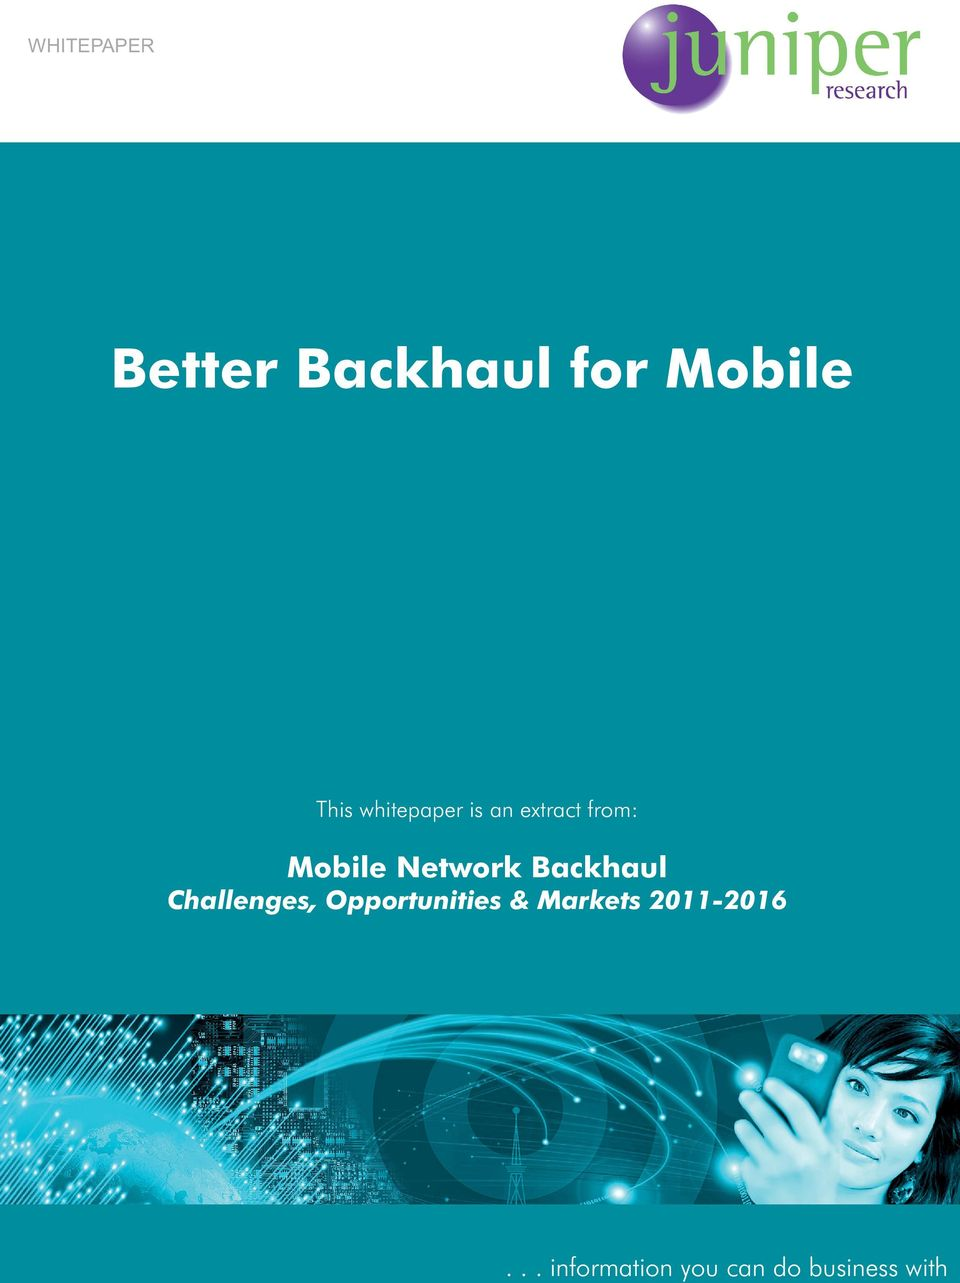 Backhaul Challenges, Opportunities & Markets